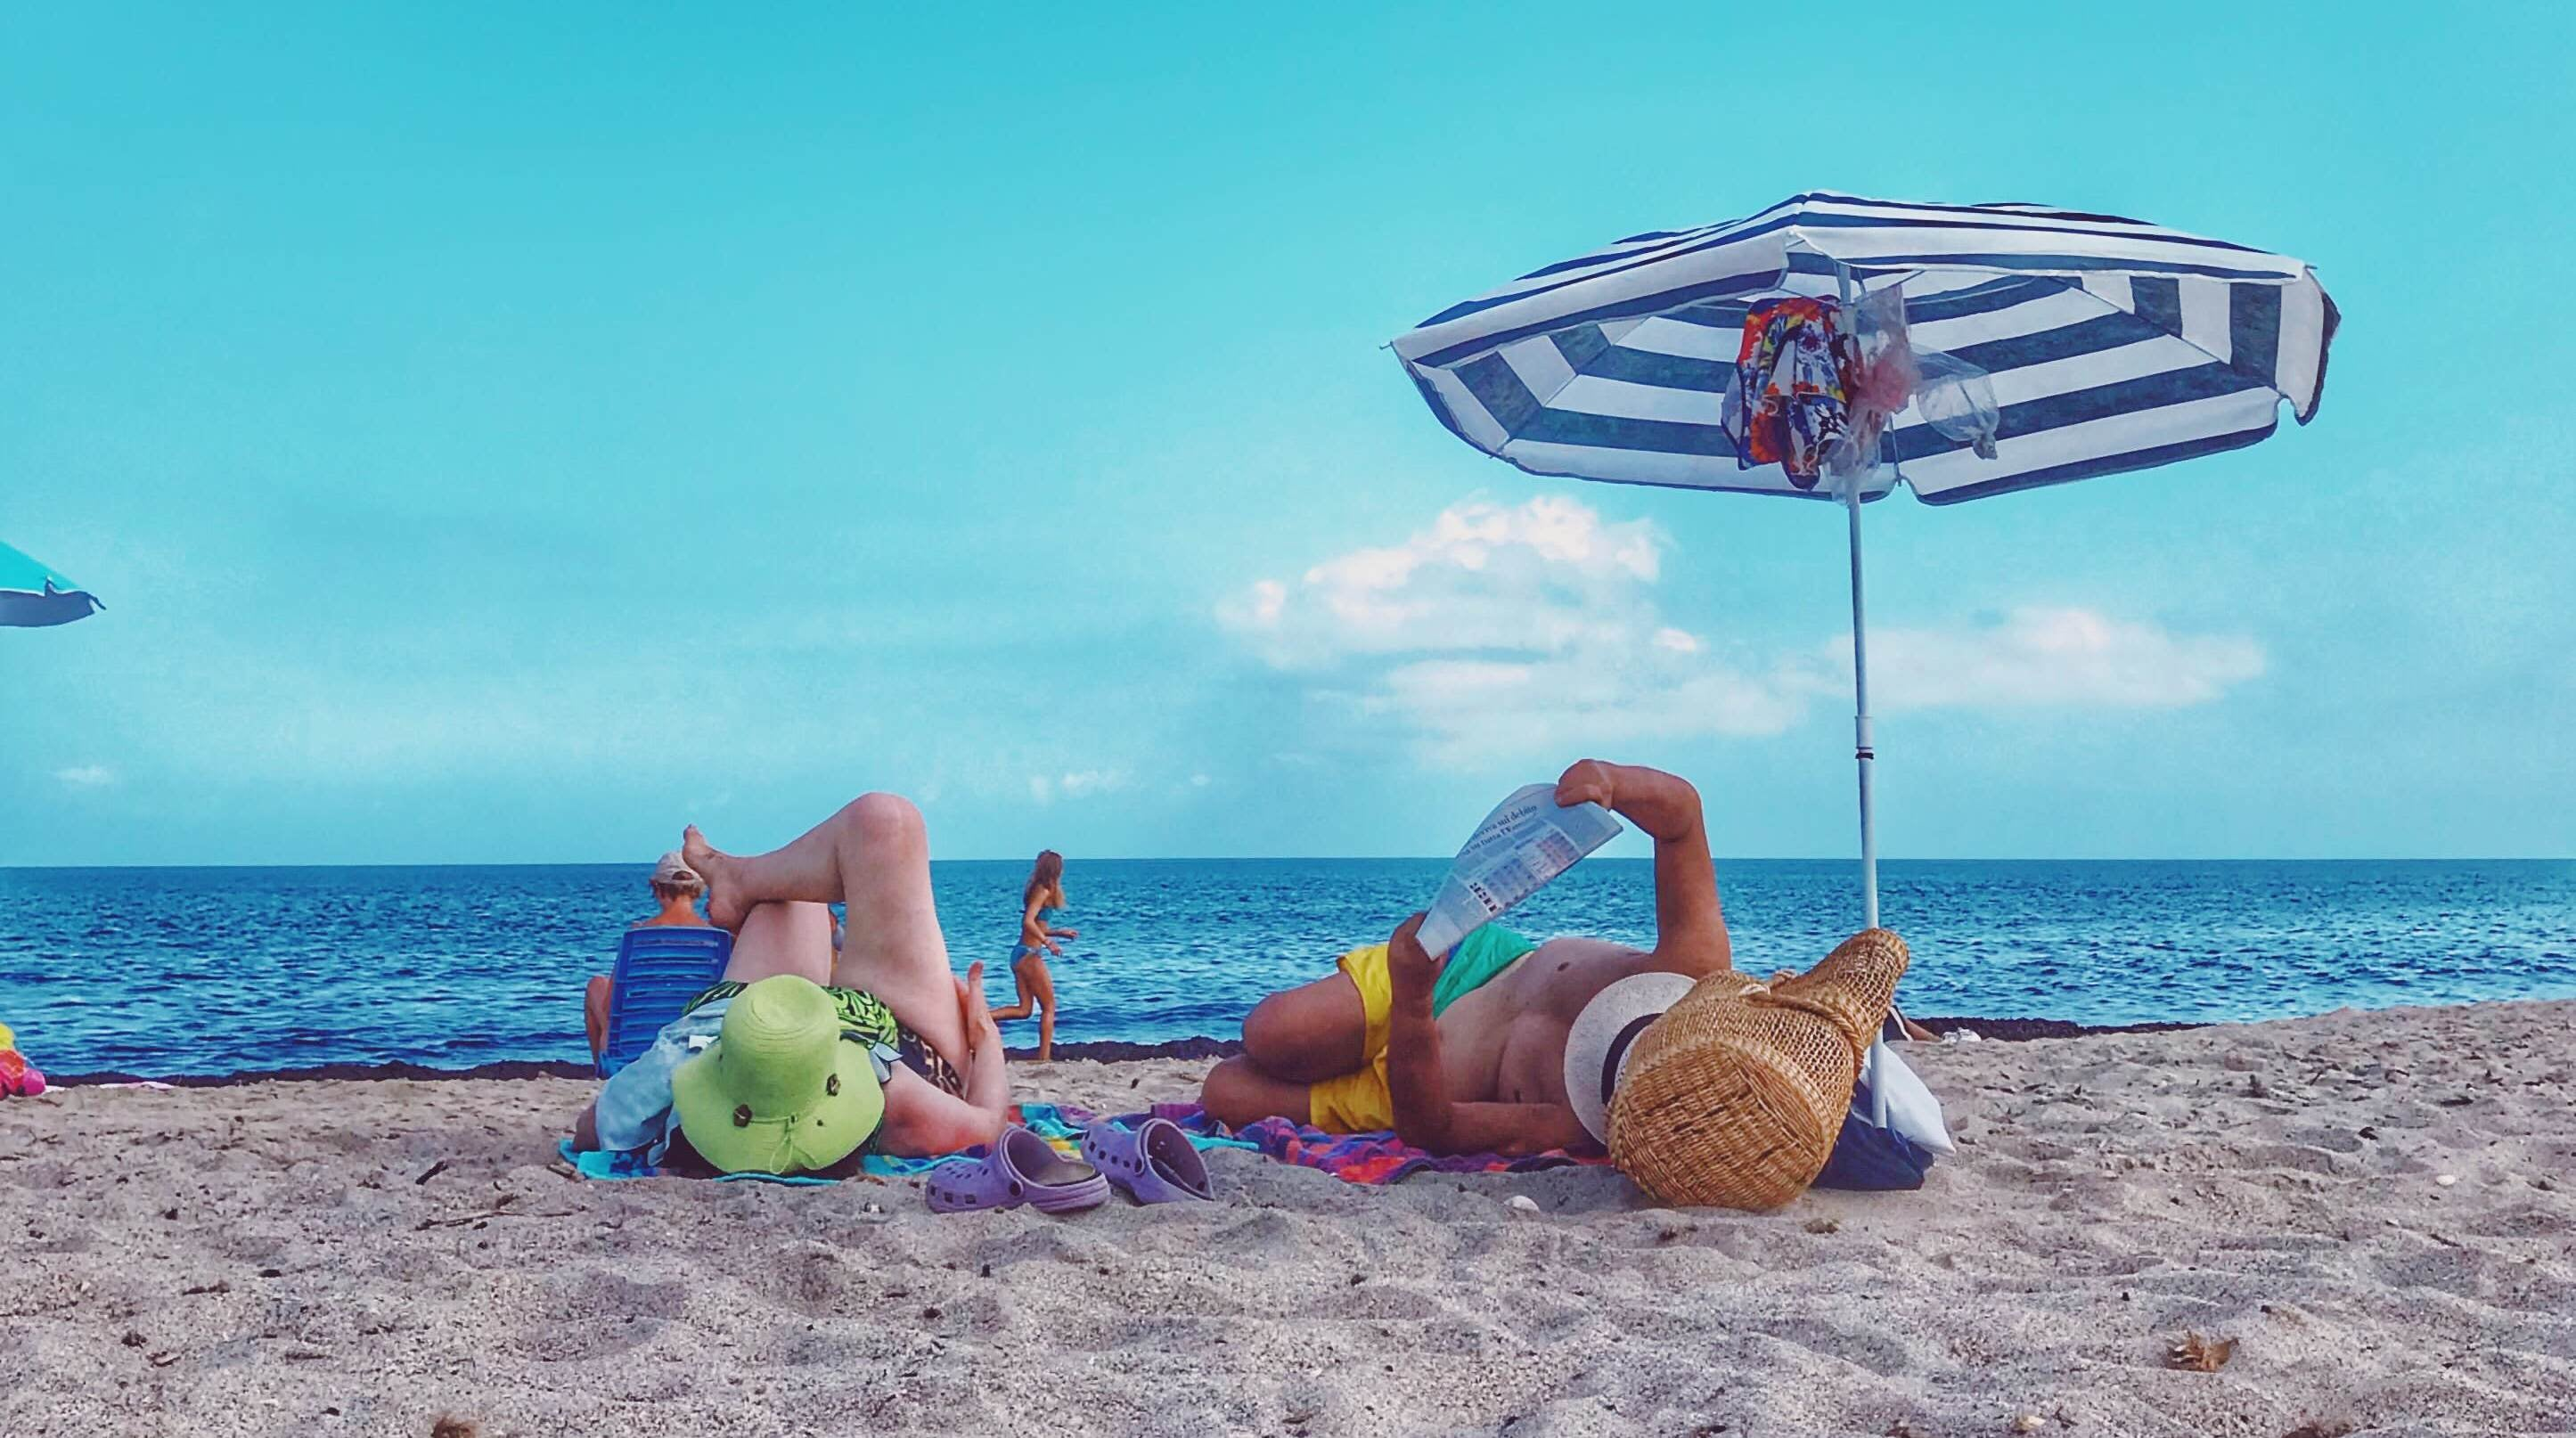 How To Get A Break From Your Kids While On Holiday